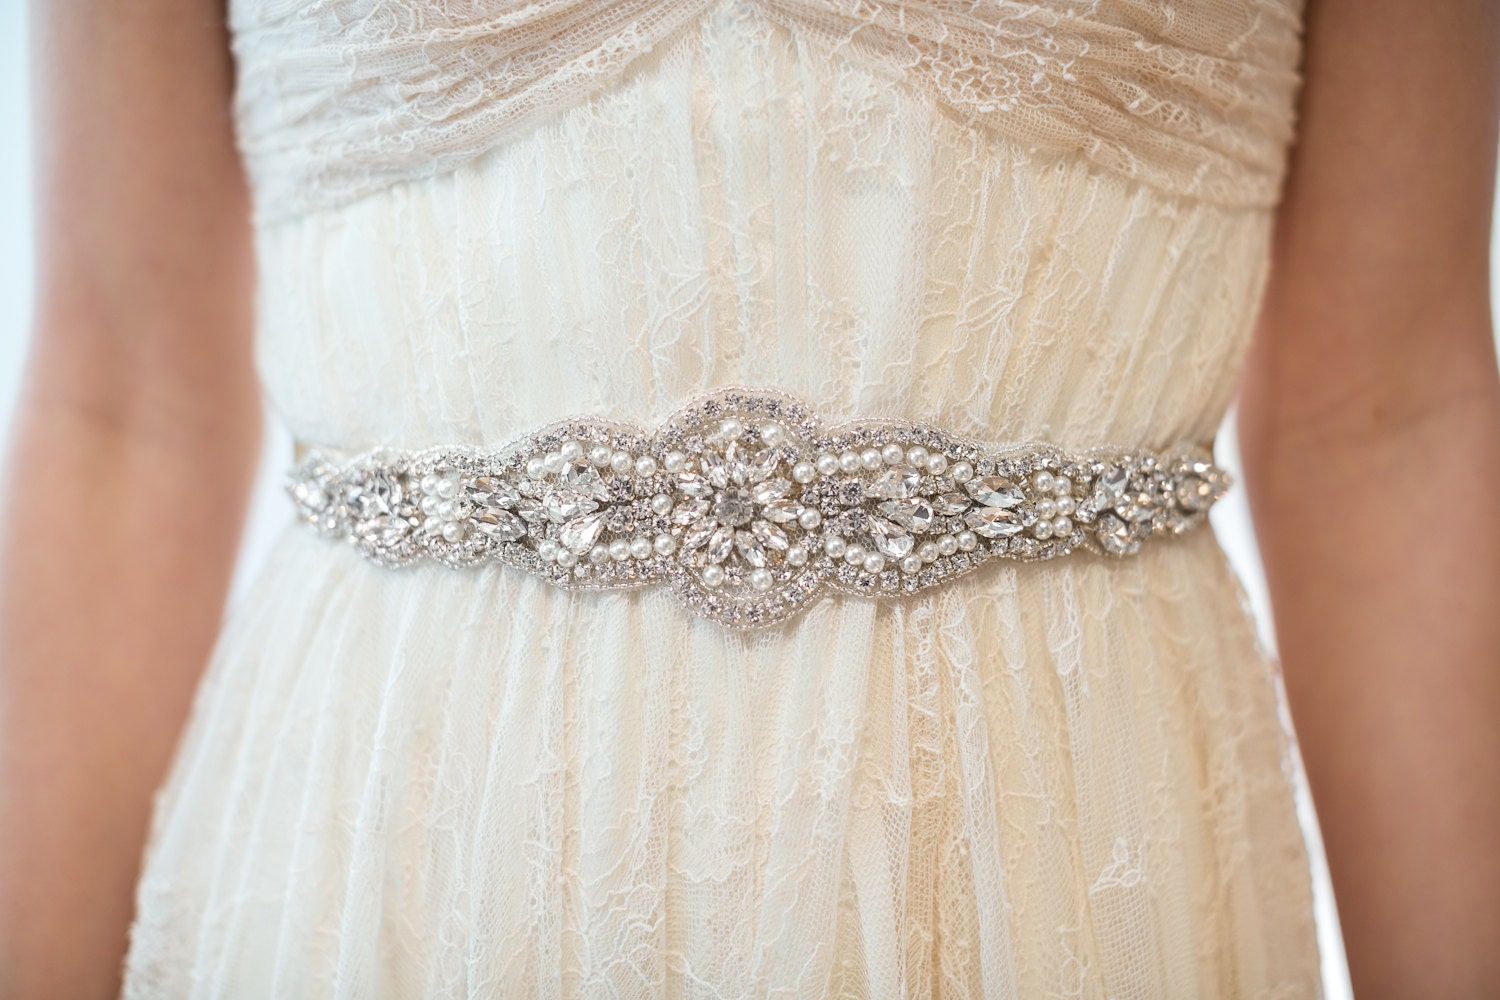 Bridal gown sash wedding dress sash rhinestone beaded sash for Wedding dress sash with rhinestones